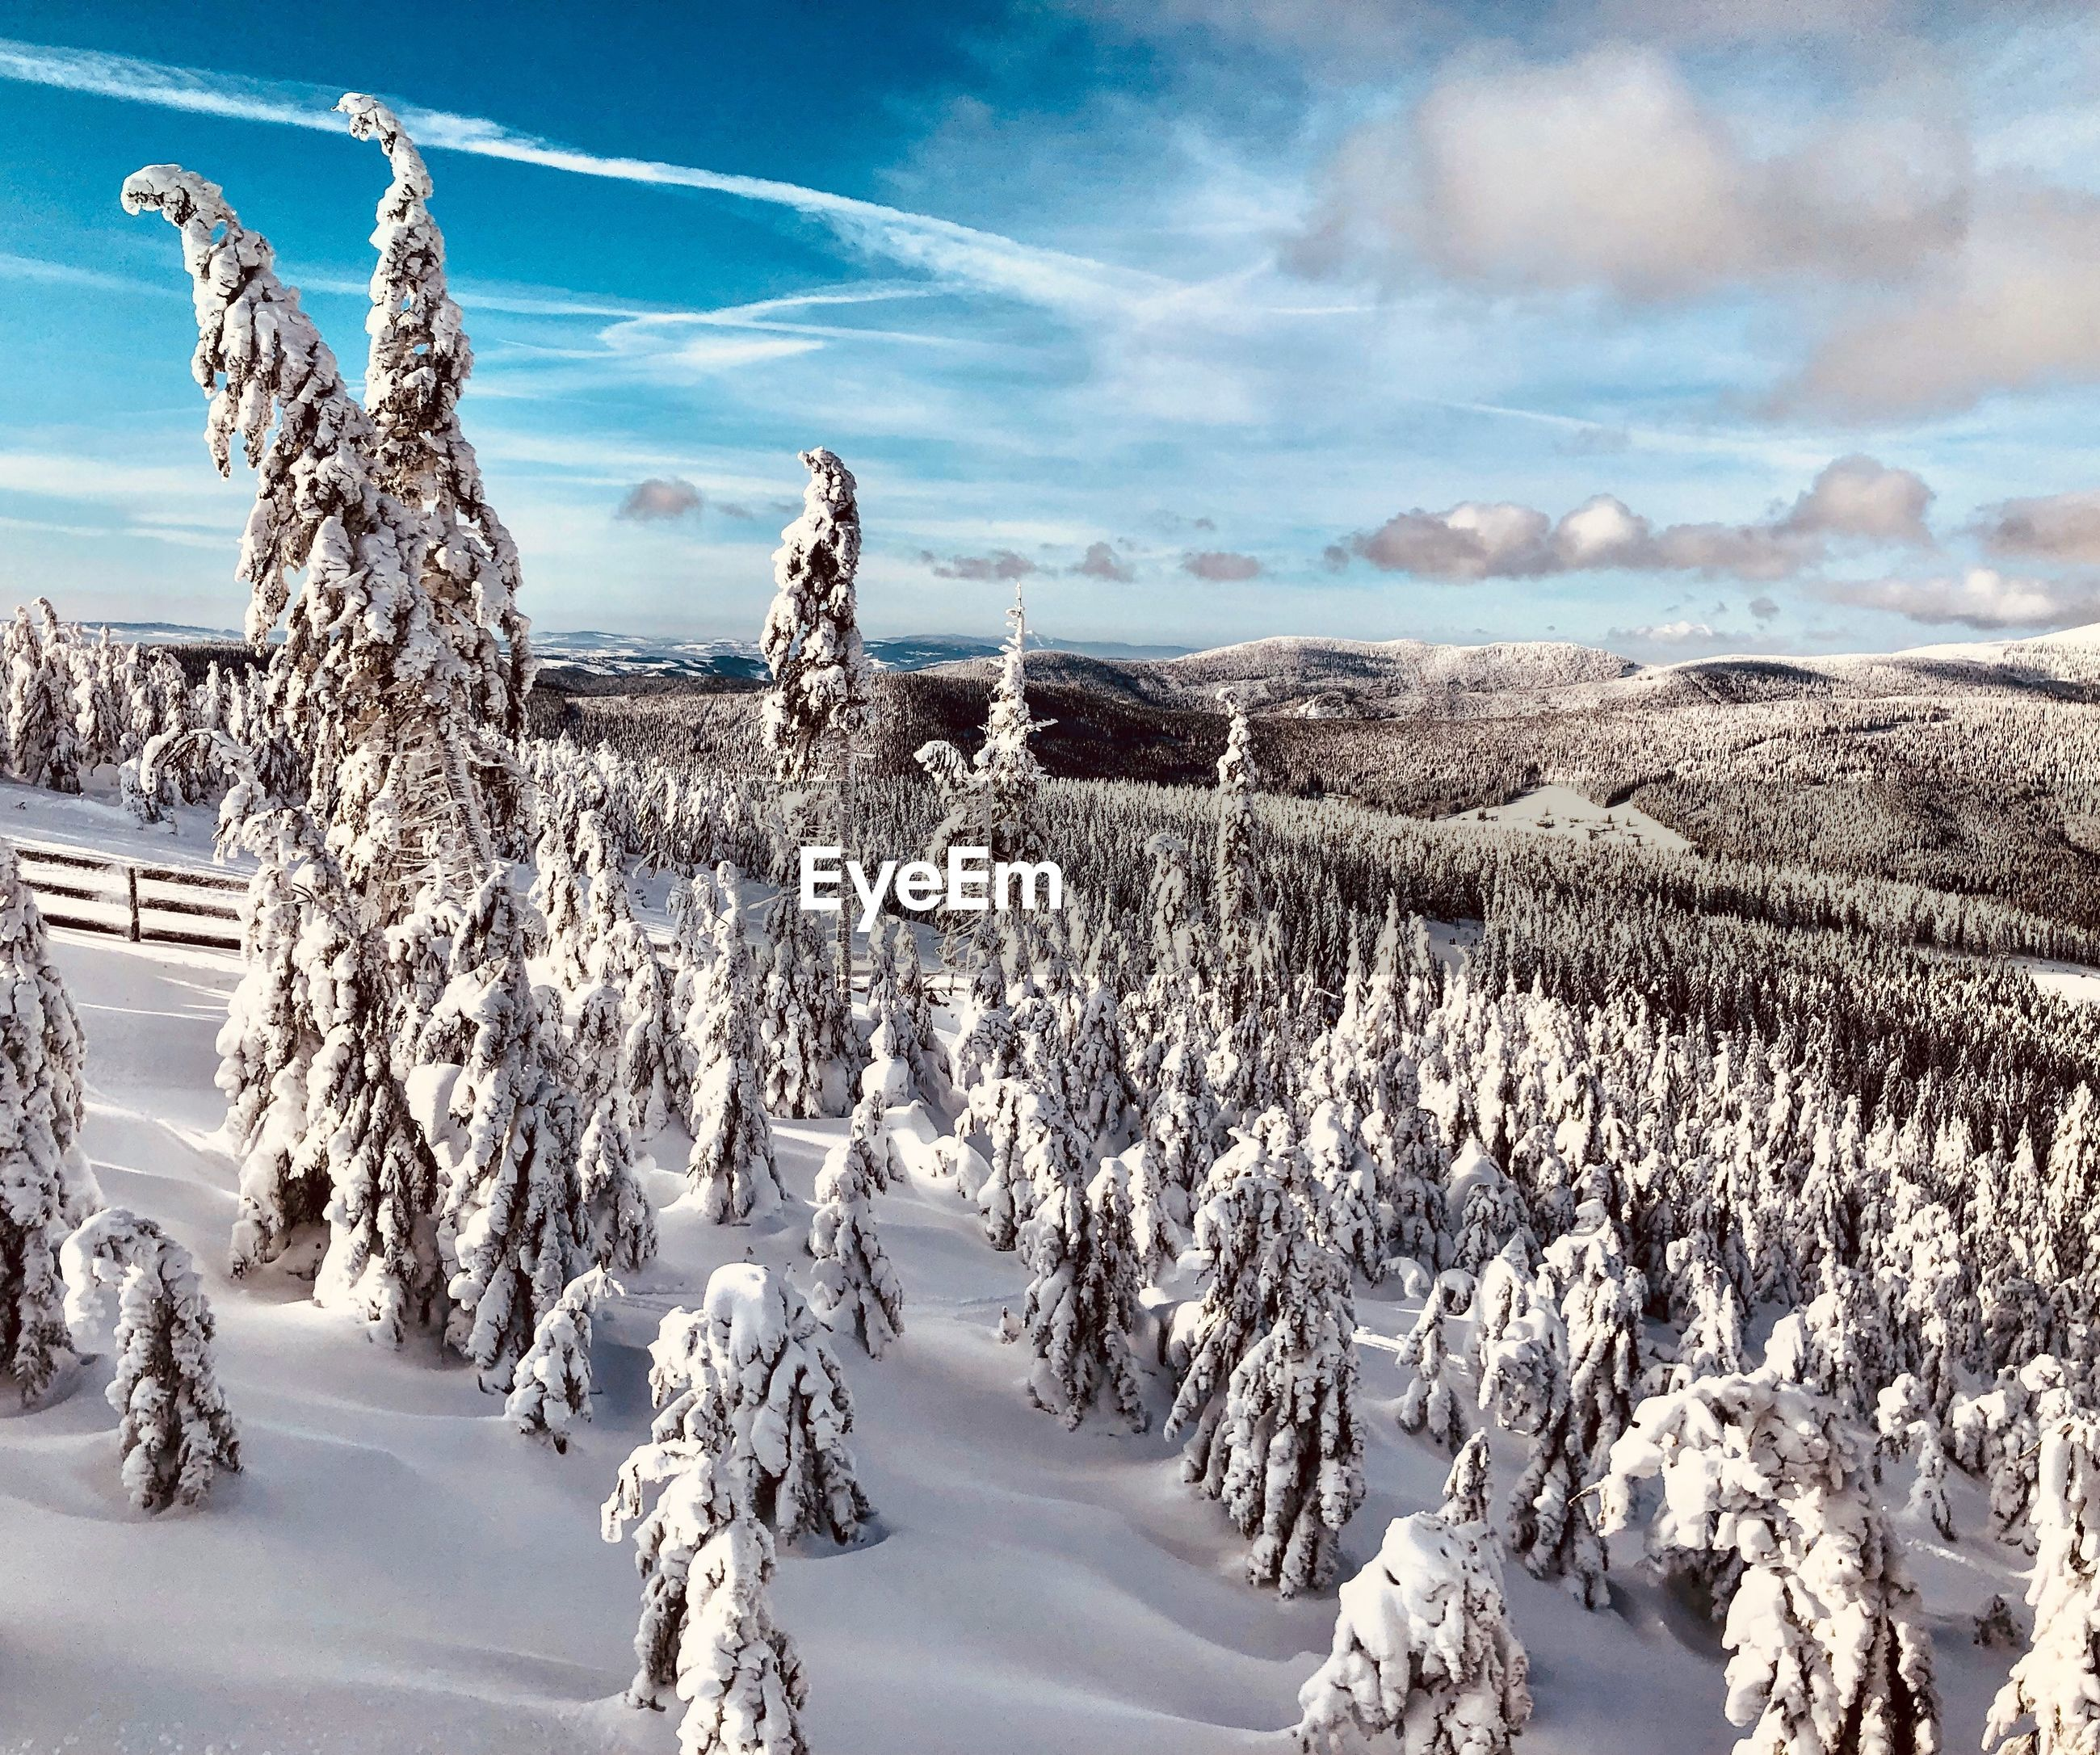 PANORAMIC SHOT OF TREES ON SNOW COVERED FIELD